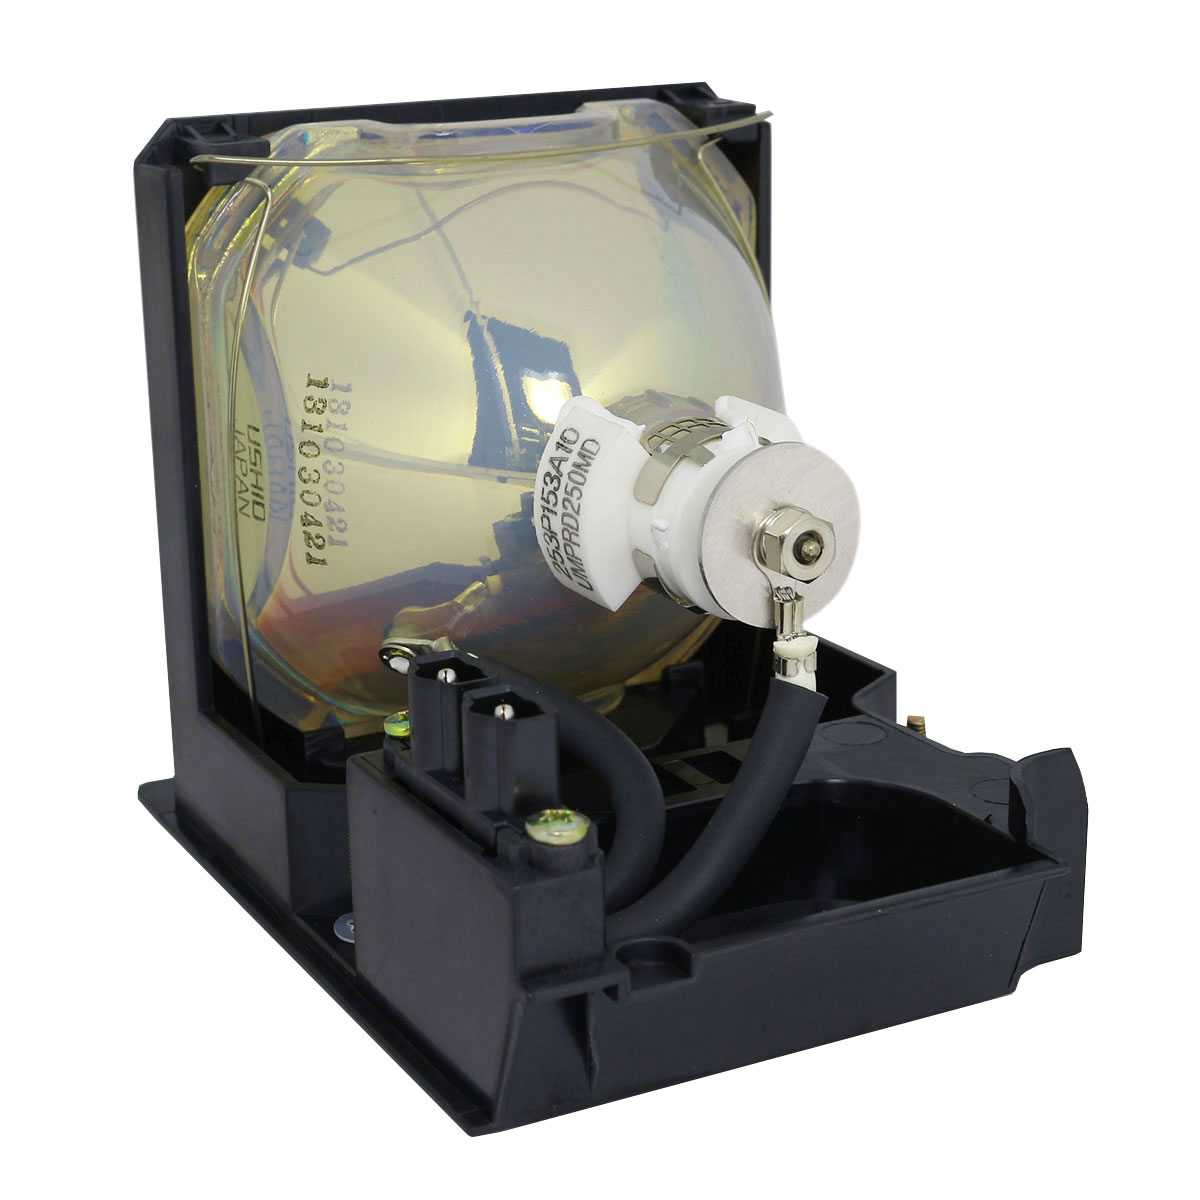 Original Ushio Projector Lamp Replacement for Yokogawa VLT-X400LP (Bulb Only) - image 1 of 5